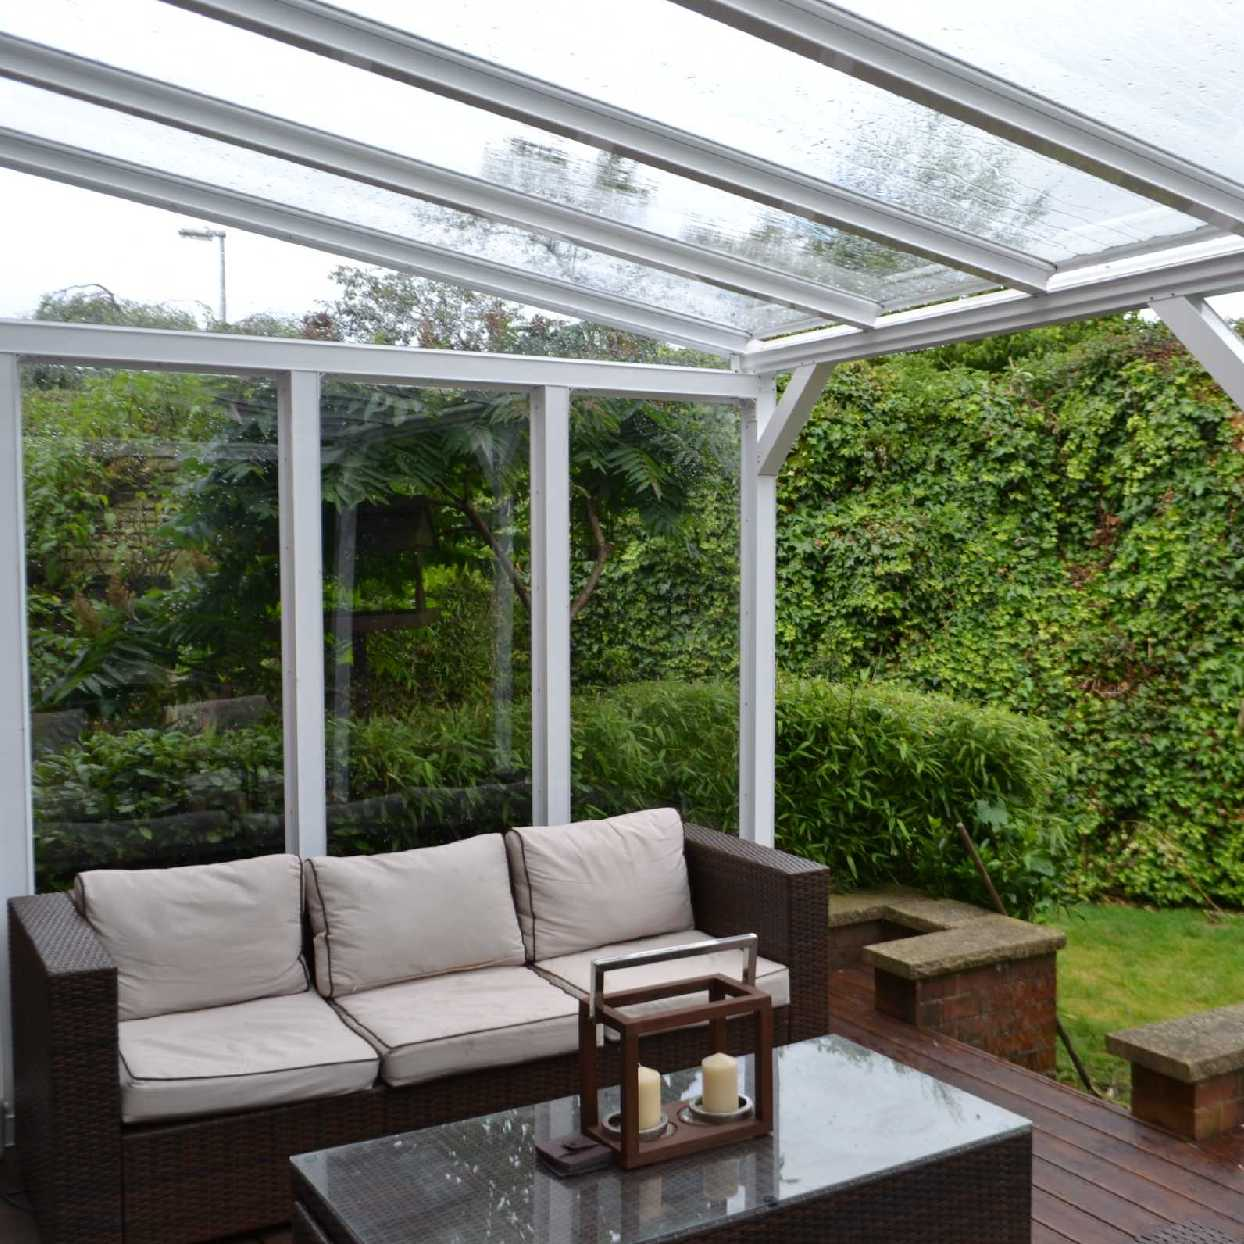 Great selection of Omega Smart Lean-To Canopy with 16mm Polycarbonate Glazing - 12.0m (W) x 3.5m (P), (5) Supporting Posts